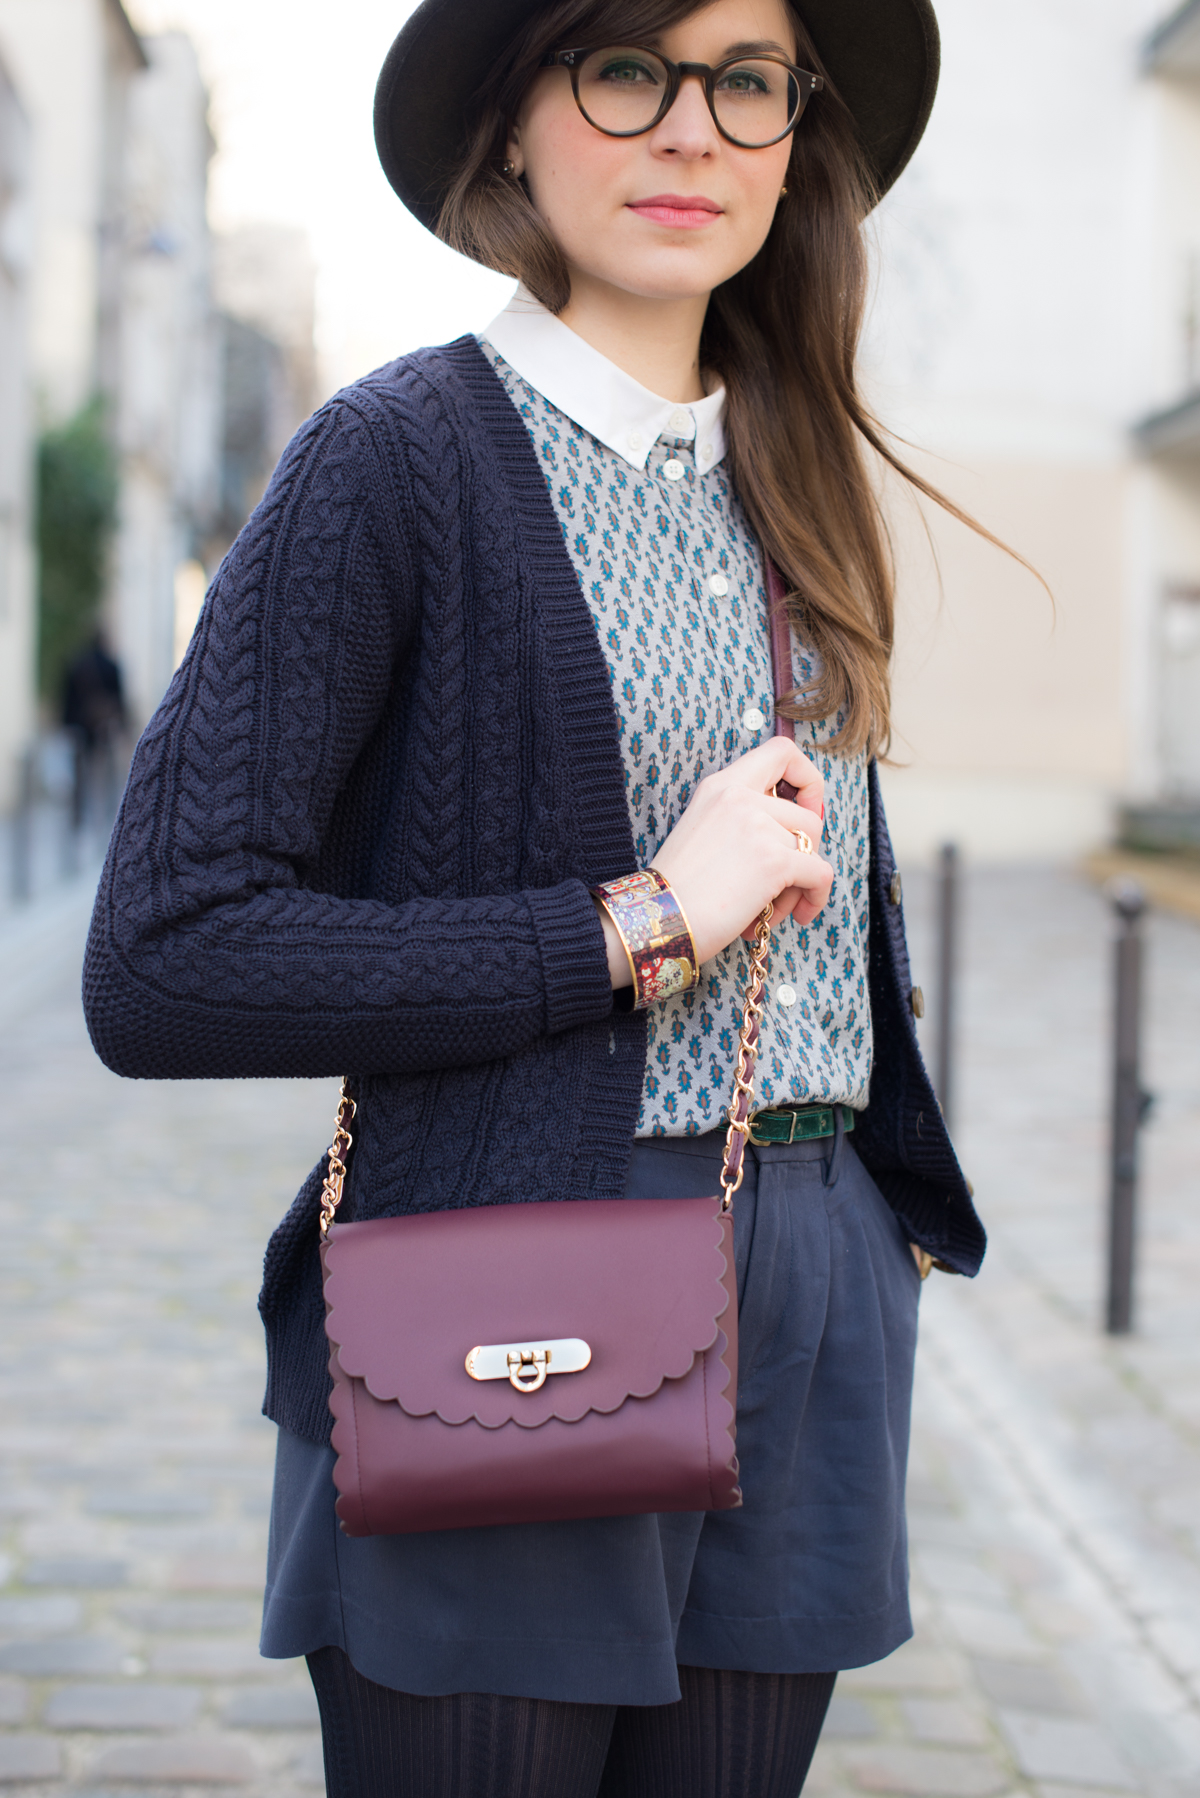 Blog Mode And The City - www.modeandthecity.net - Sac Festonné Bordeaux Asos